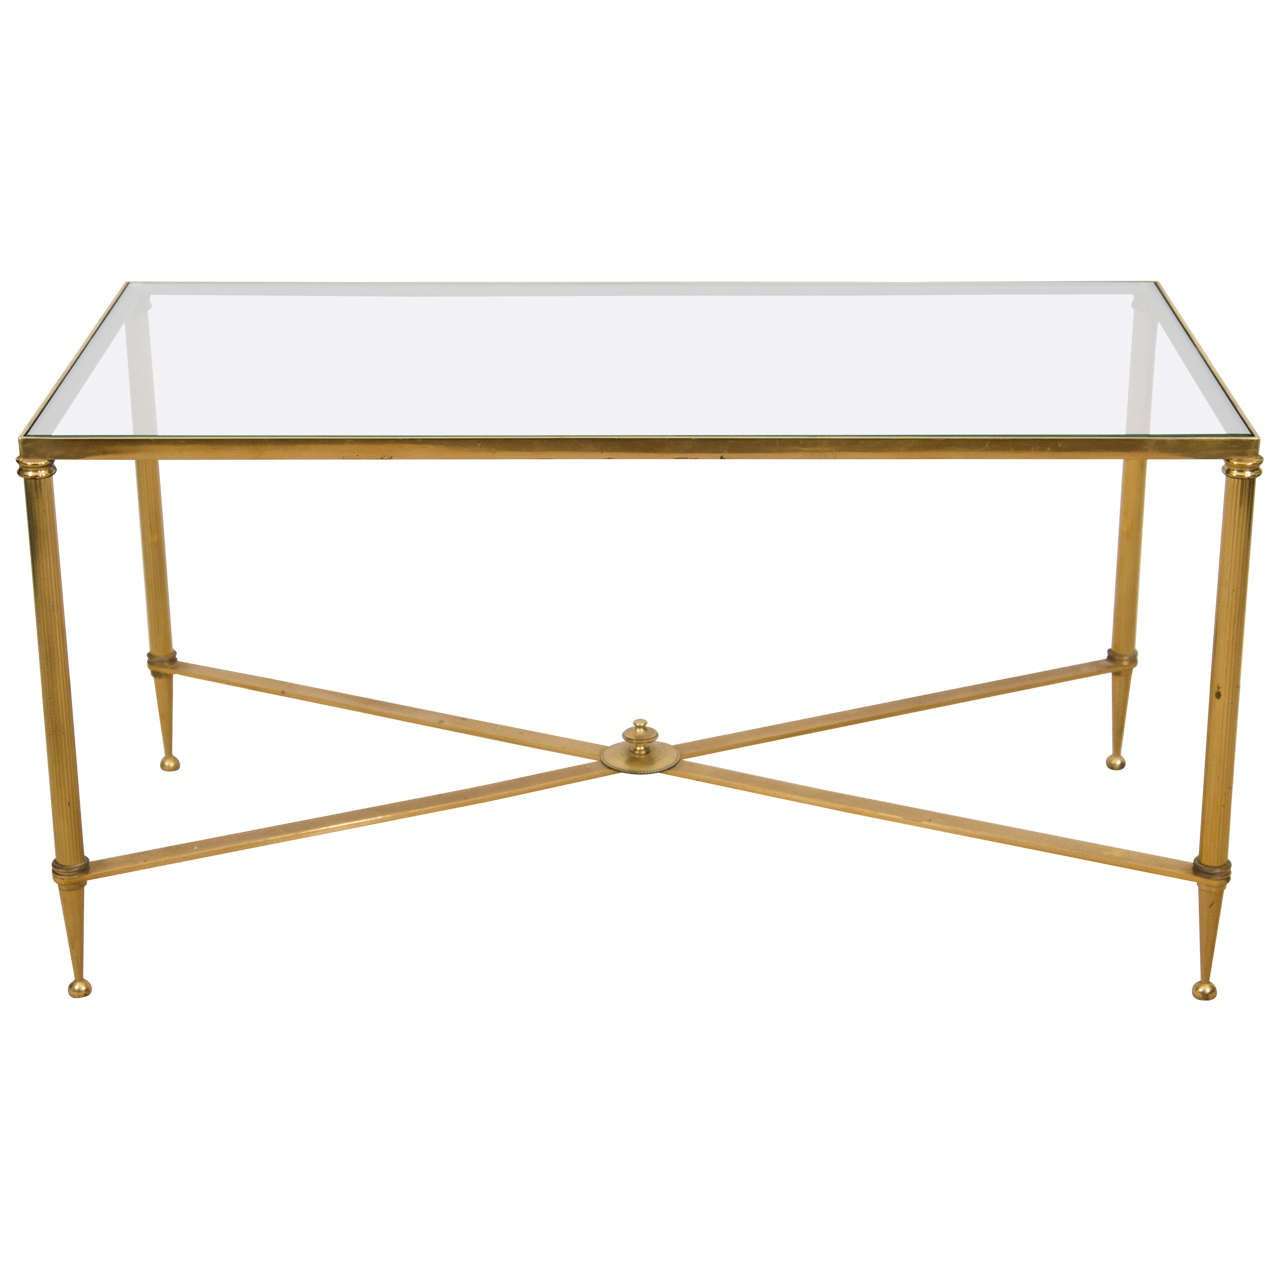 Vintage Brass And Glass X Base Coffee Or Cocktail Table At 1stdibs